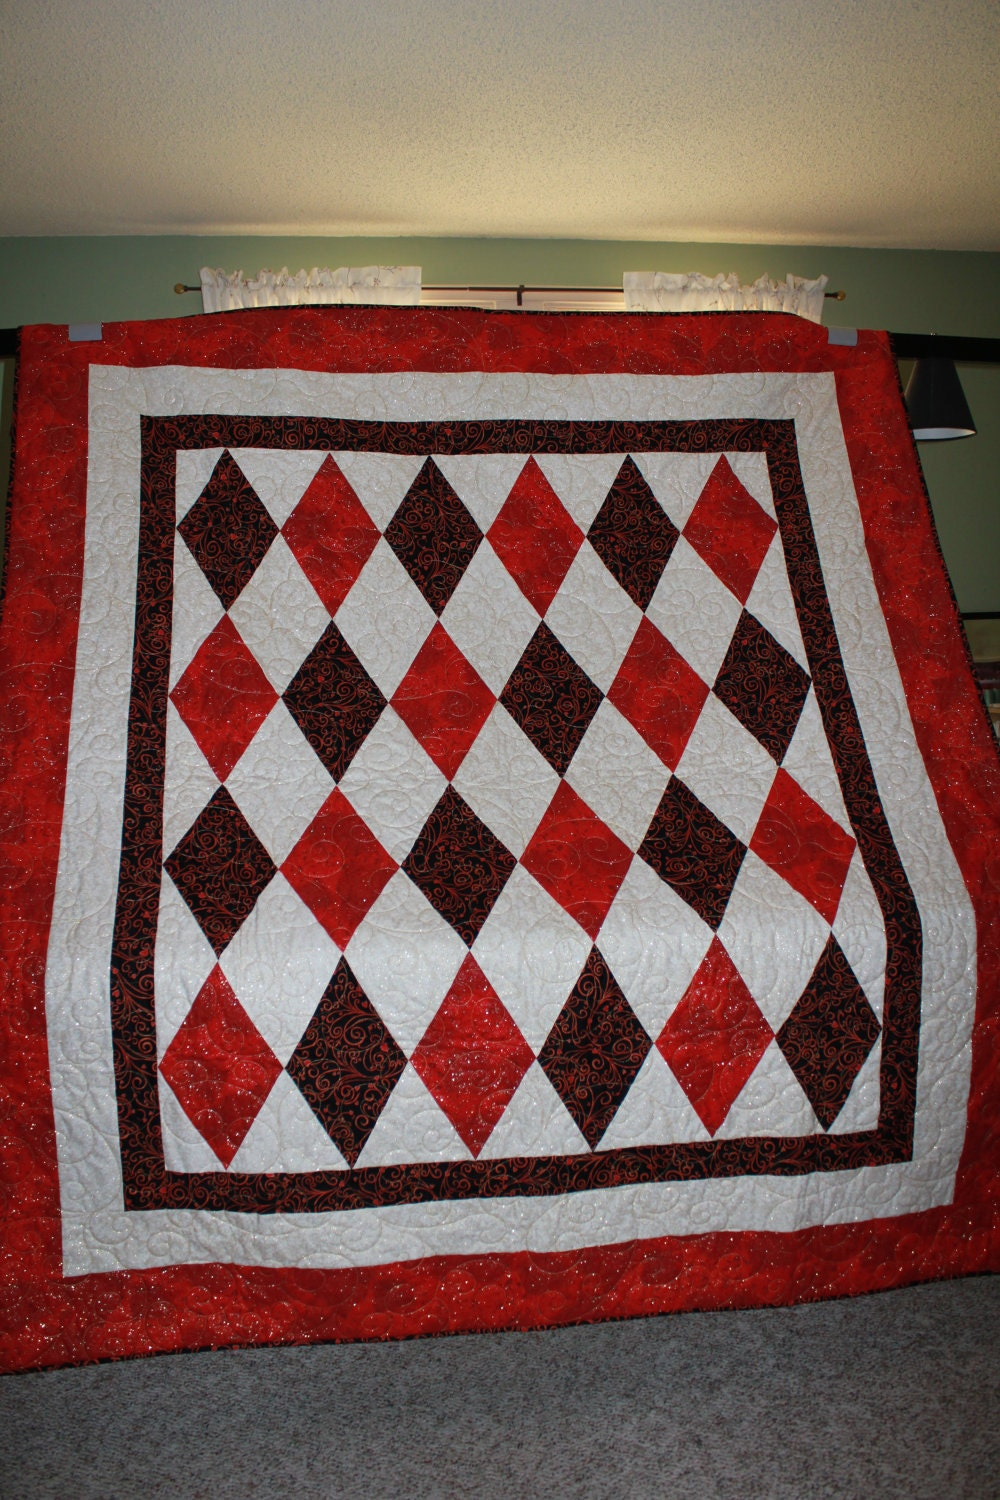 Queen of Hearts Custom Designed Diamonds in Red, White, and Black Quilt